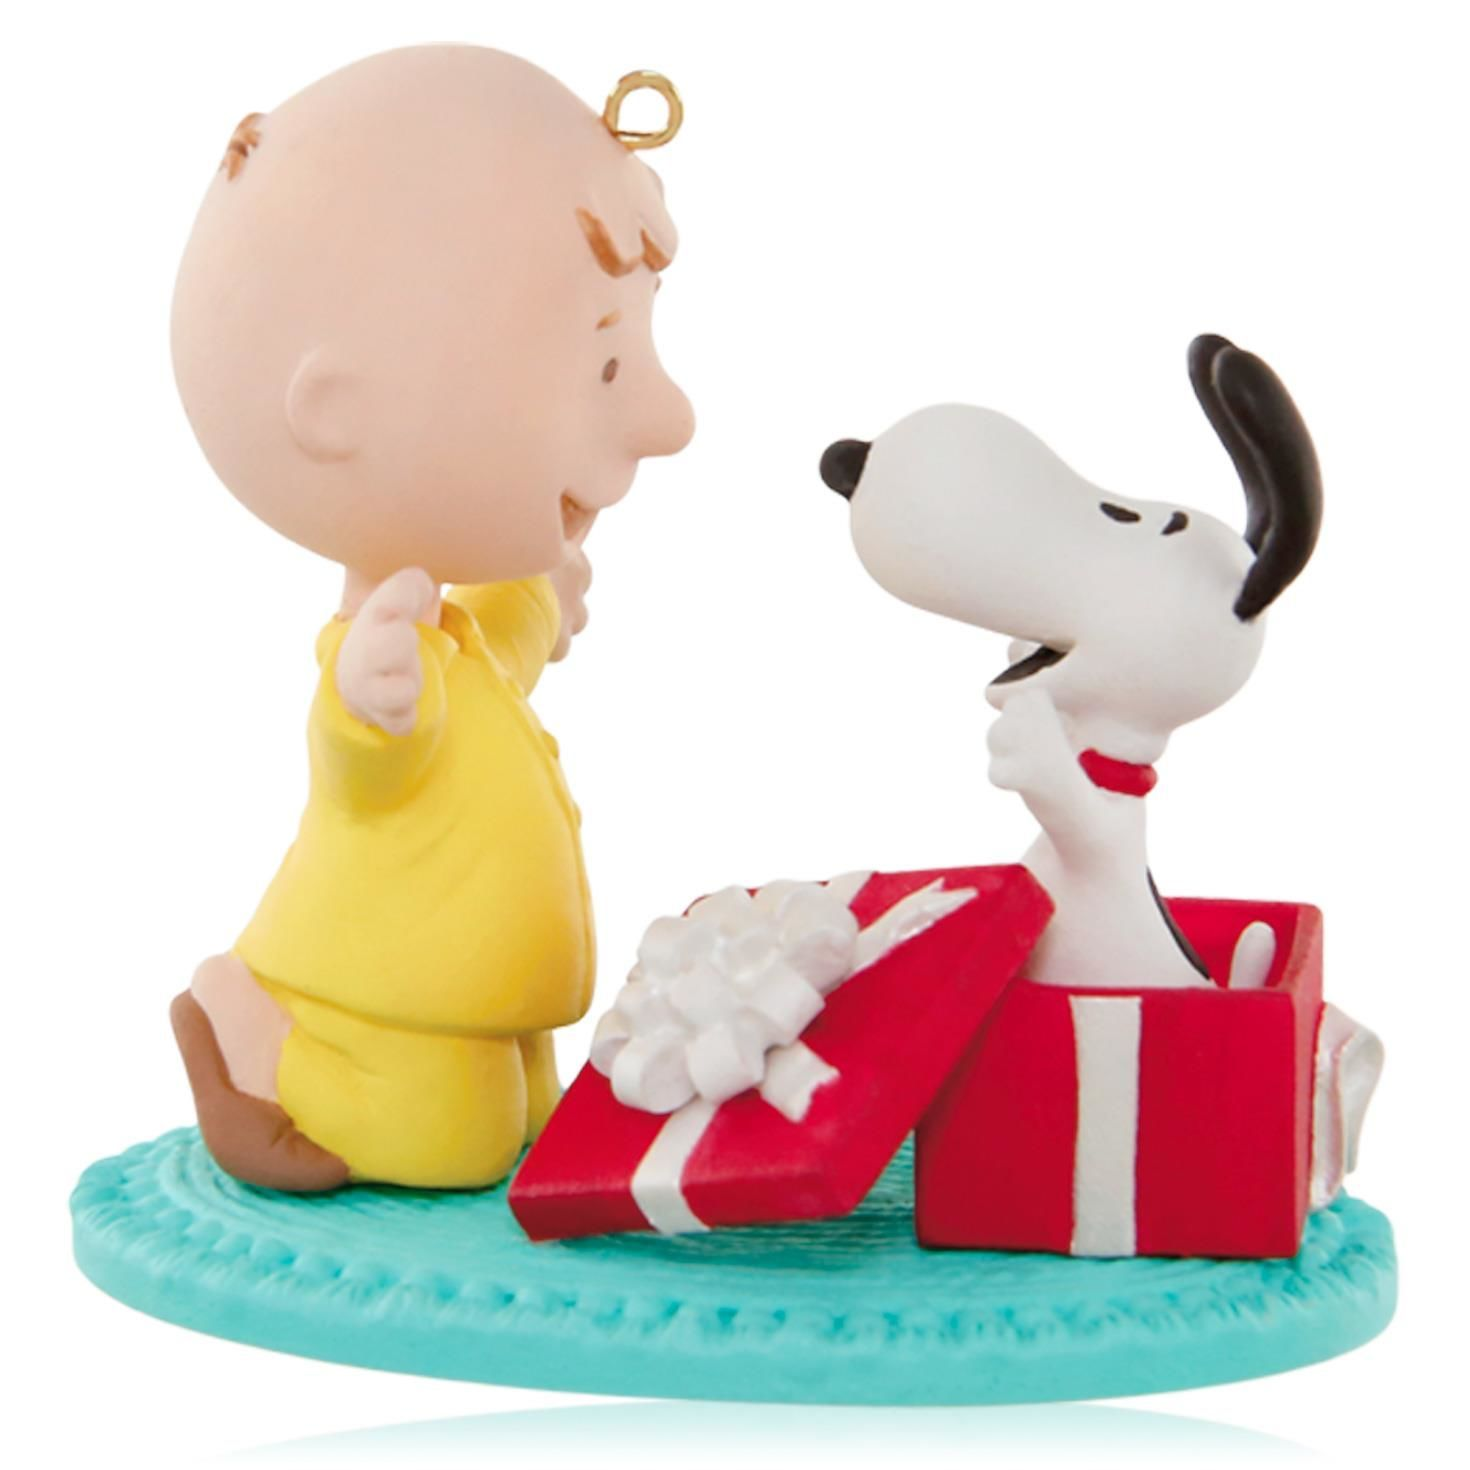 Hallmark 2015 Peanuts® A Snoopy for Christmas Ornament | ornaments ...